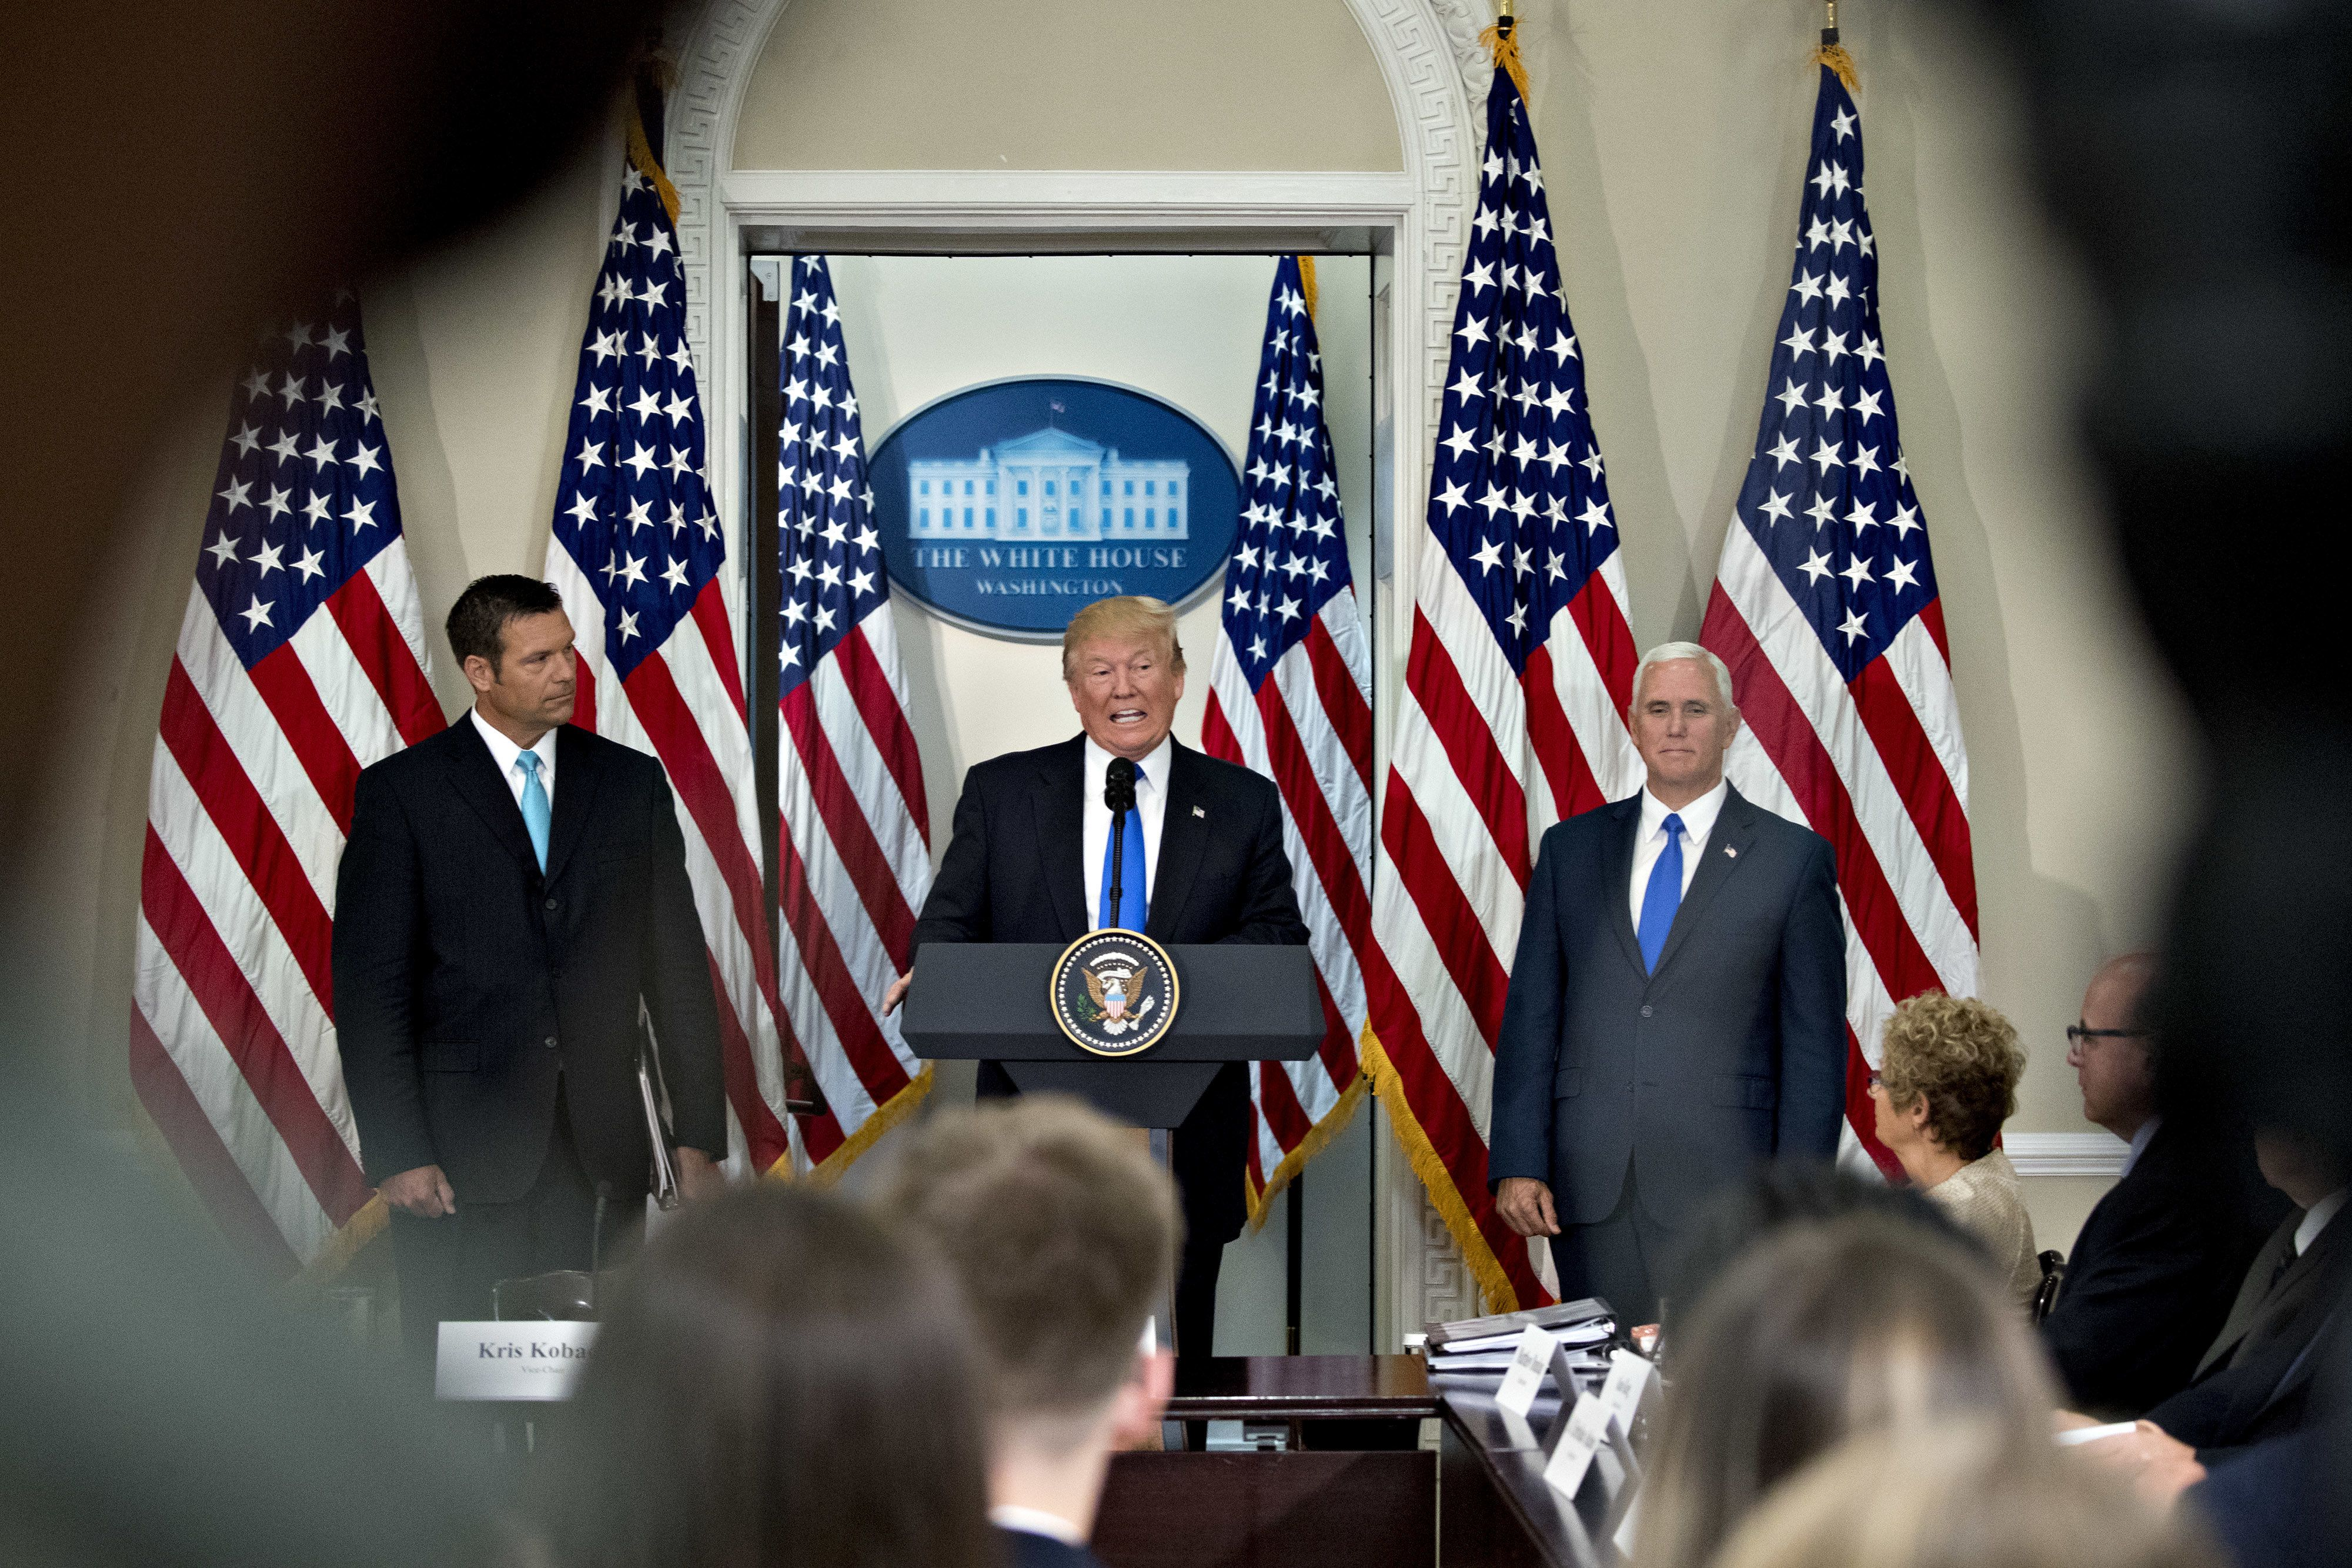 U.S. President Donald Trump, center, speaks as Vice President Mike Pence, right, and Kris Kobach, Kansass secretary of state, listen, during the initial meeting of the Presidential Advisory Commission on Election Integrity at the Eisenhower Executive Office Building in Washington, D.C., U.S., on Wednesday, July 19, 2017. Trump created the advisory commission in May, after claiming without evidence that 3 million people or more illegally voted for Hillary Clinton last year. Photographer: Andrew Harrer/Bloomberg via Getty Images